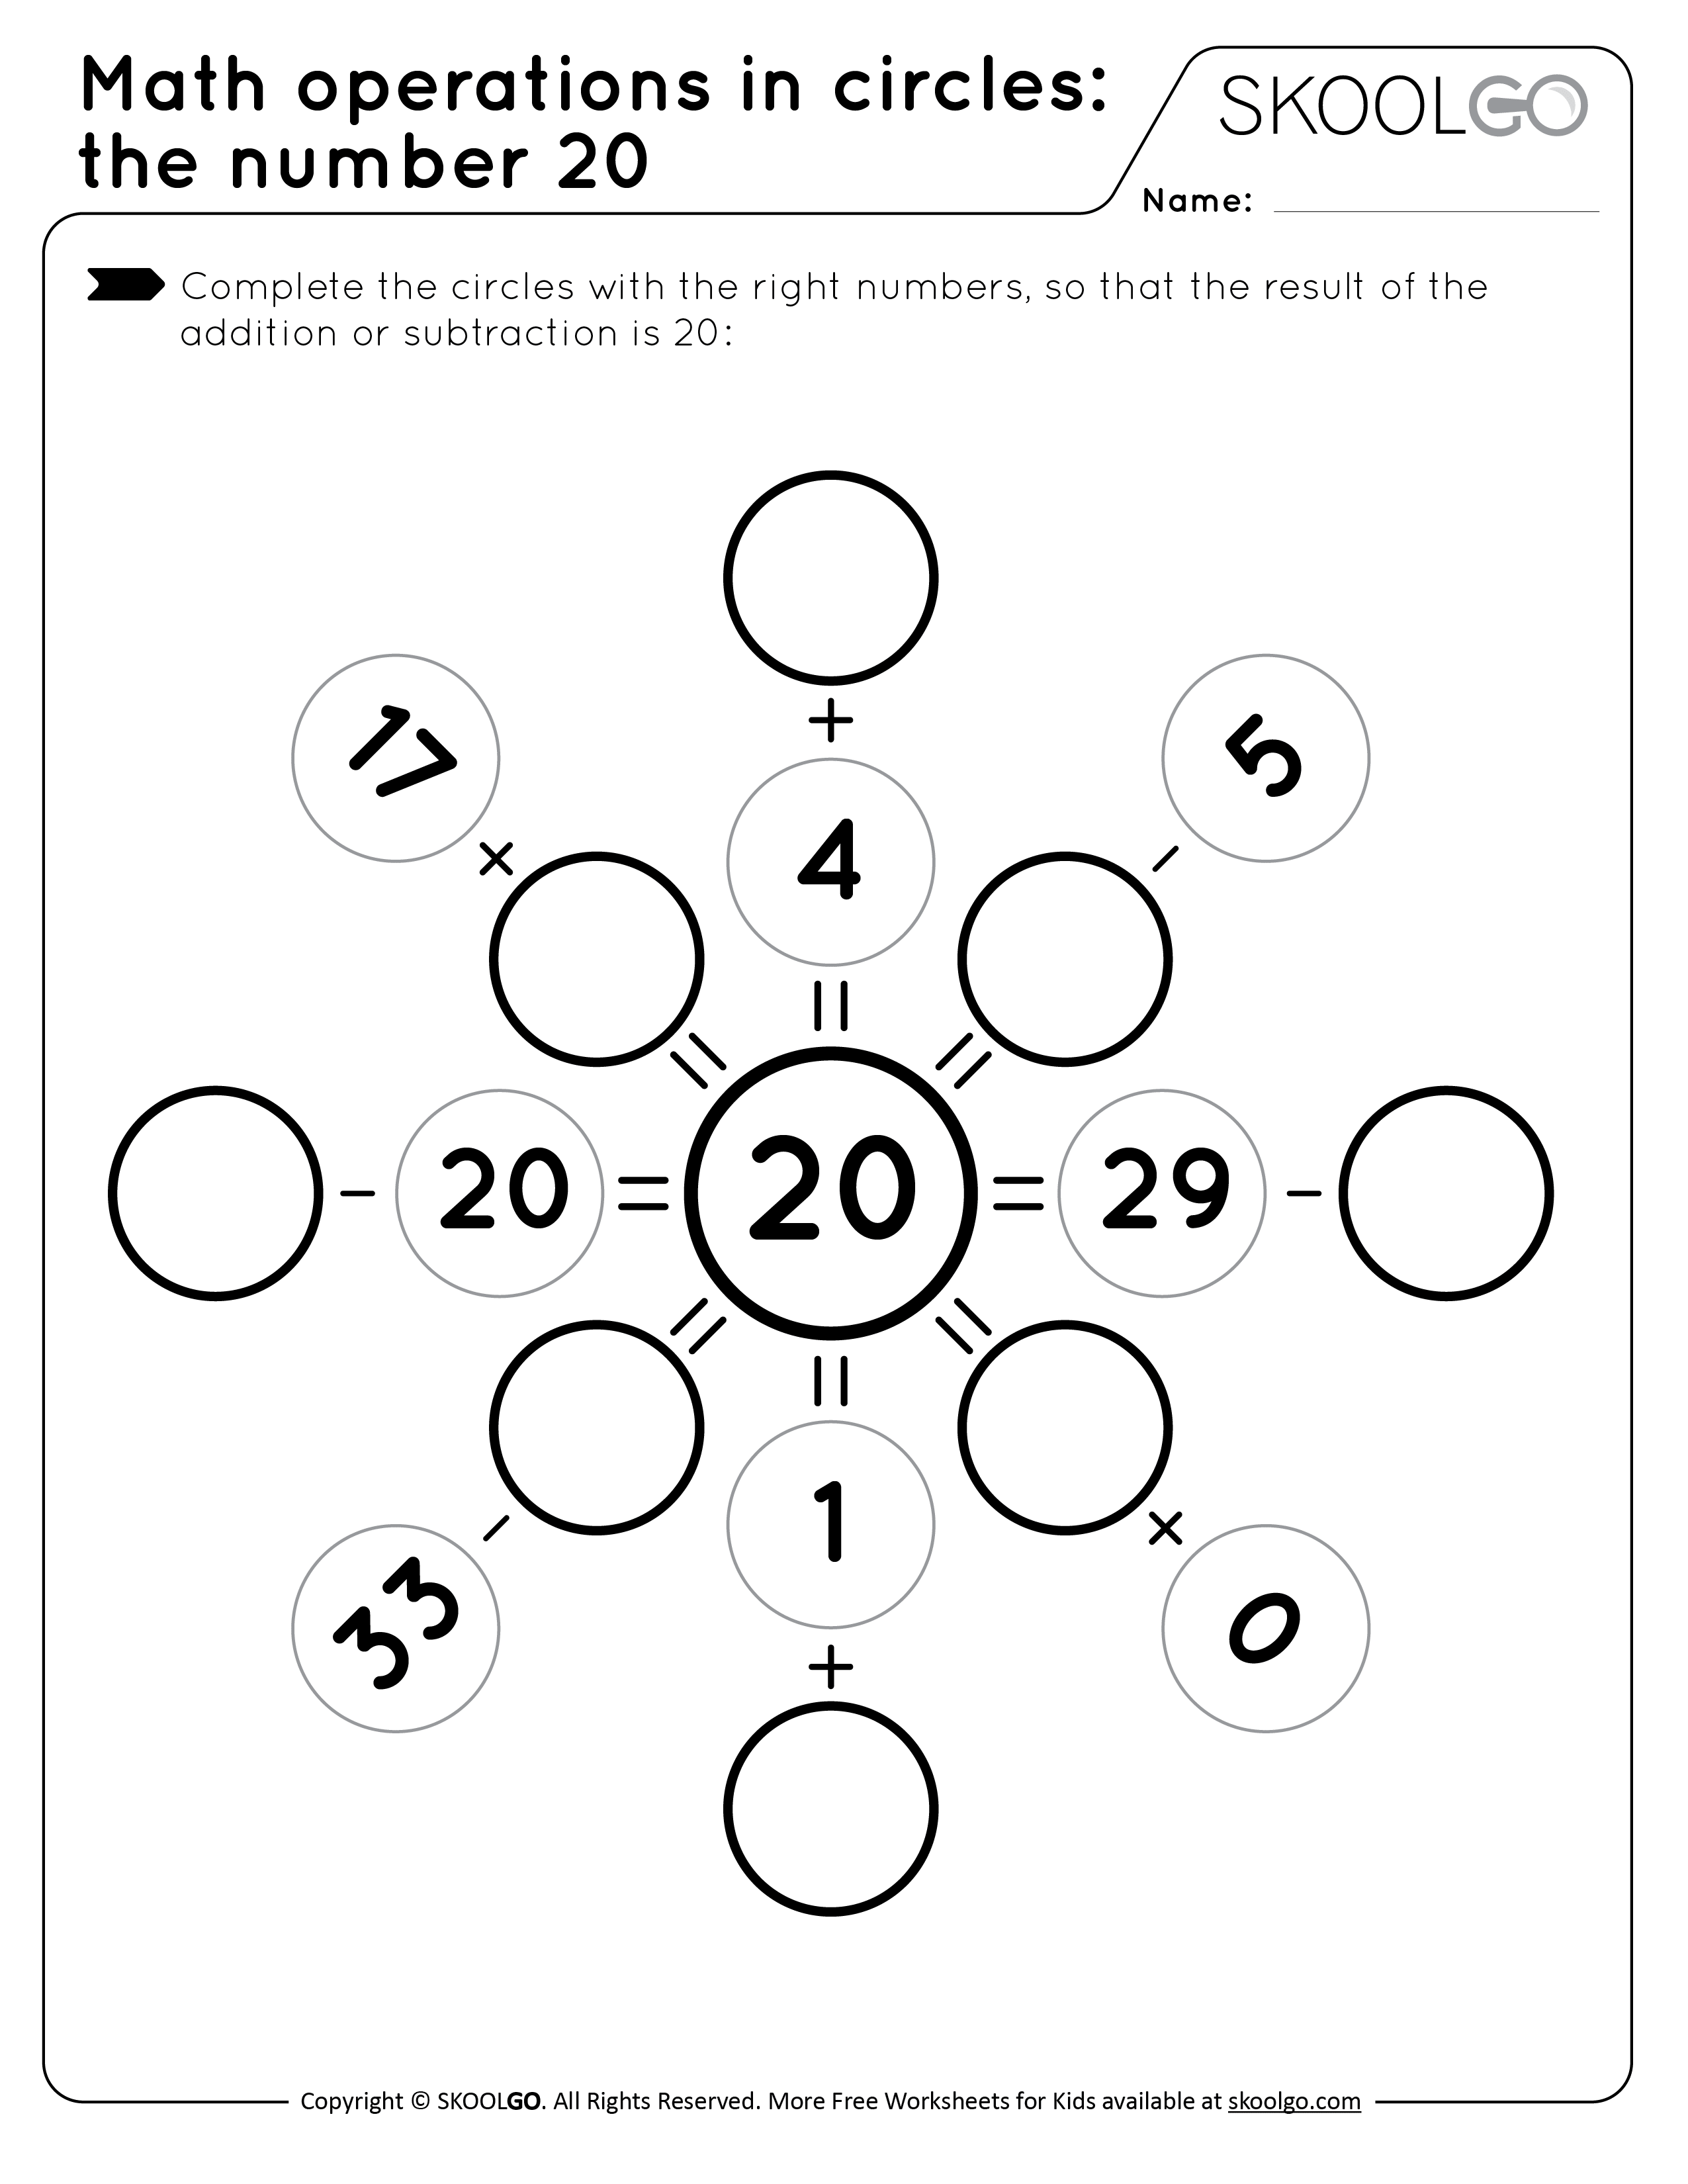 Math Operations in Circle - the Number 20 - Free Black and White Worksheet for Kids